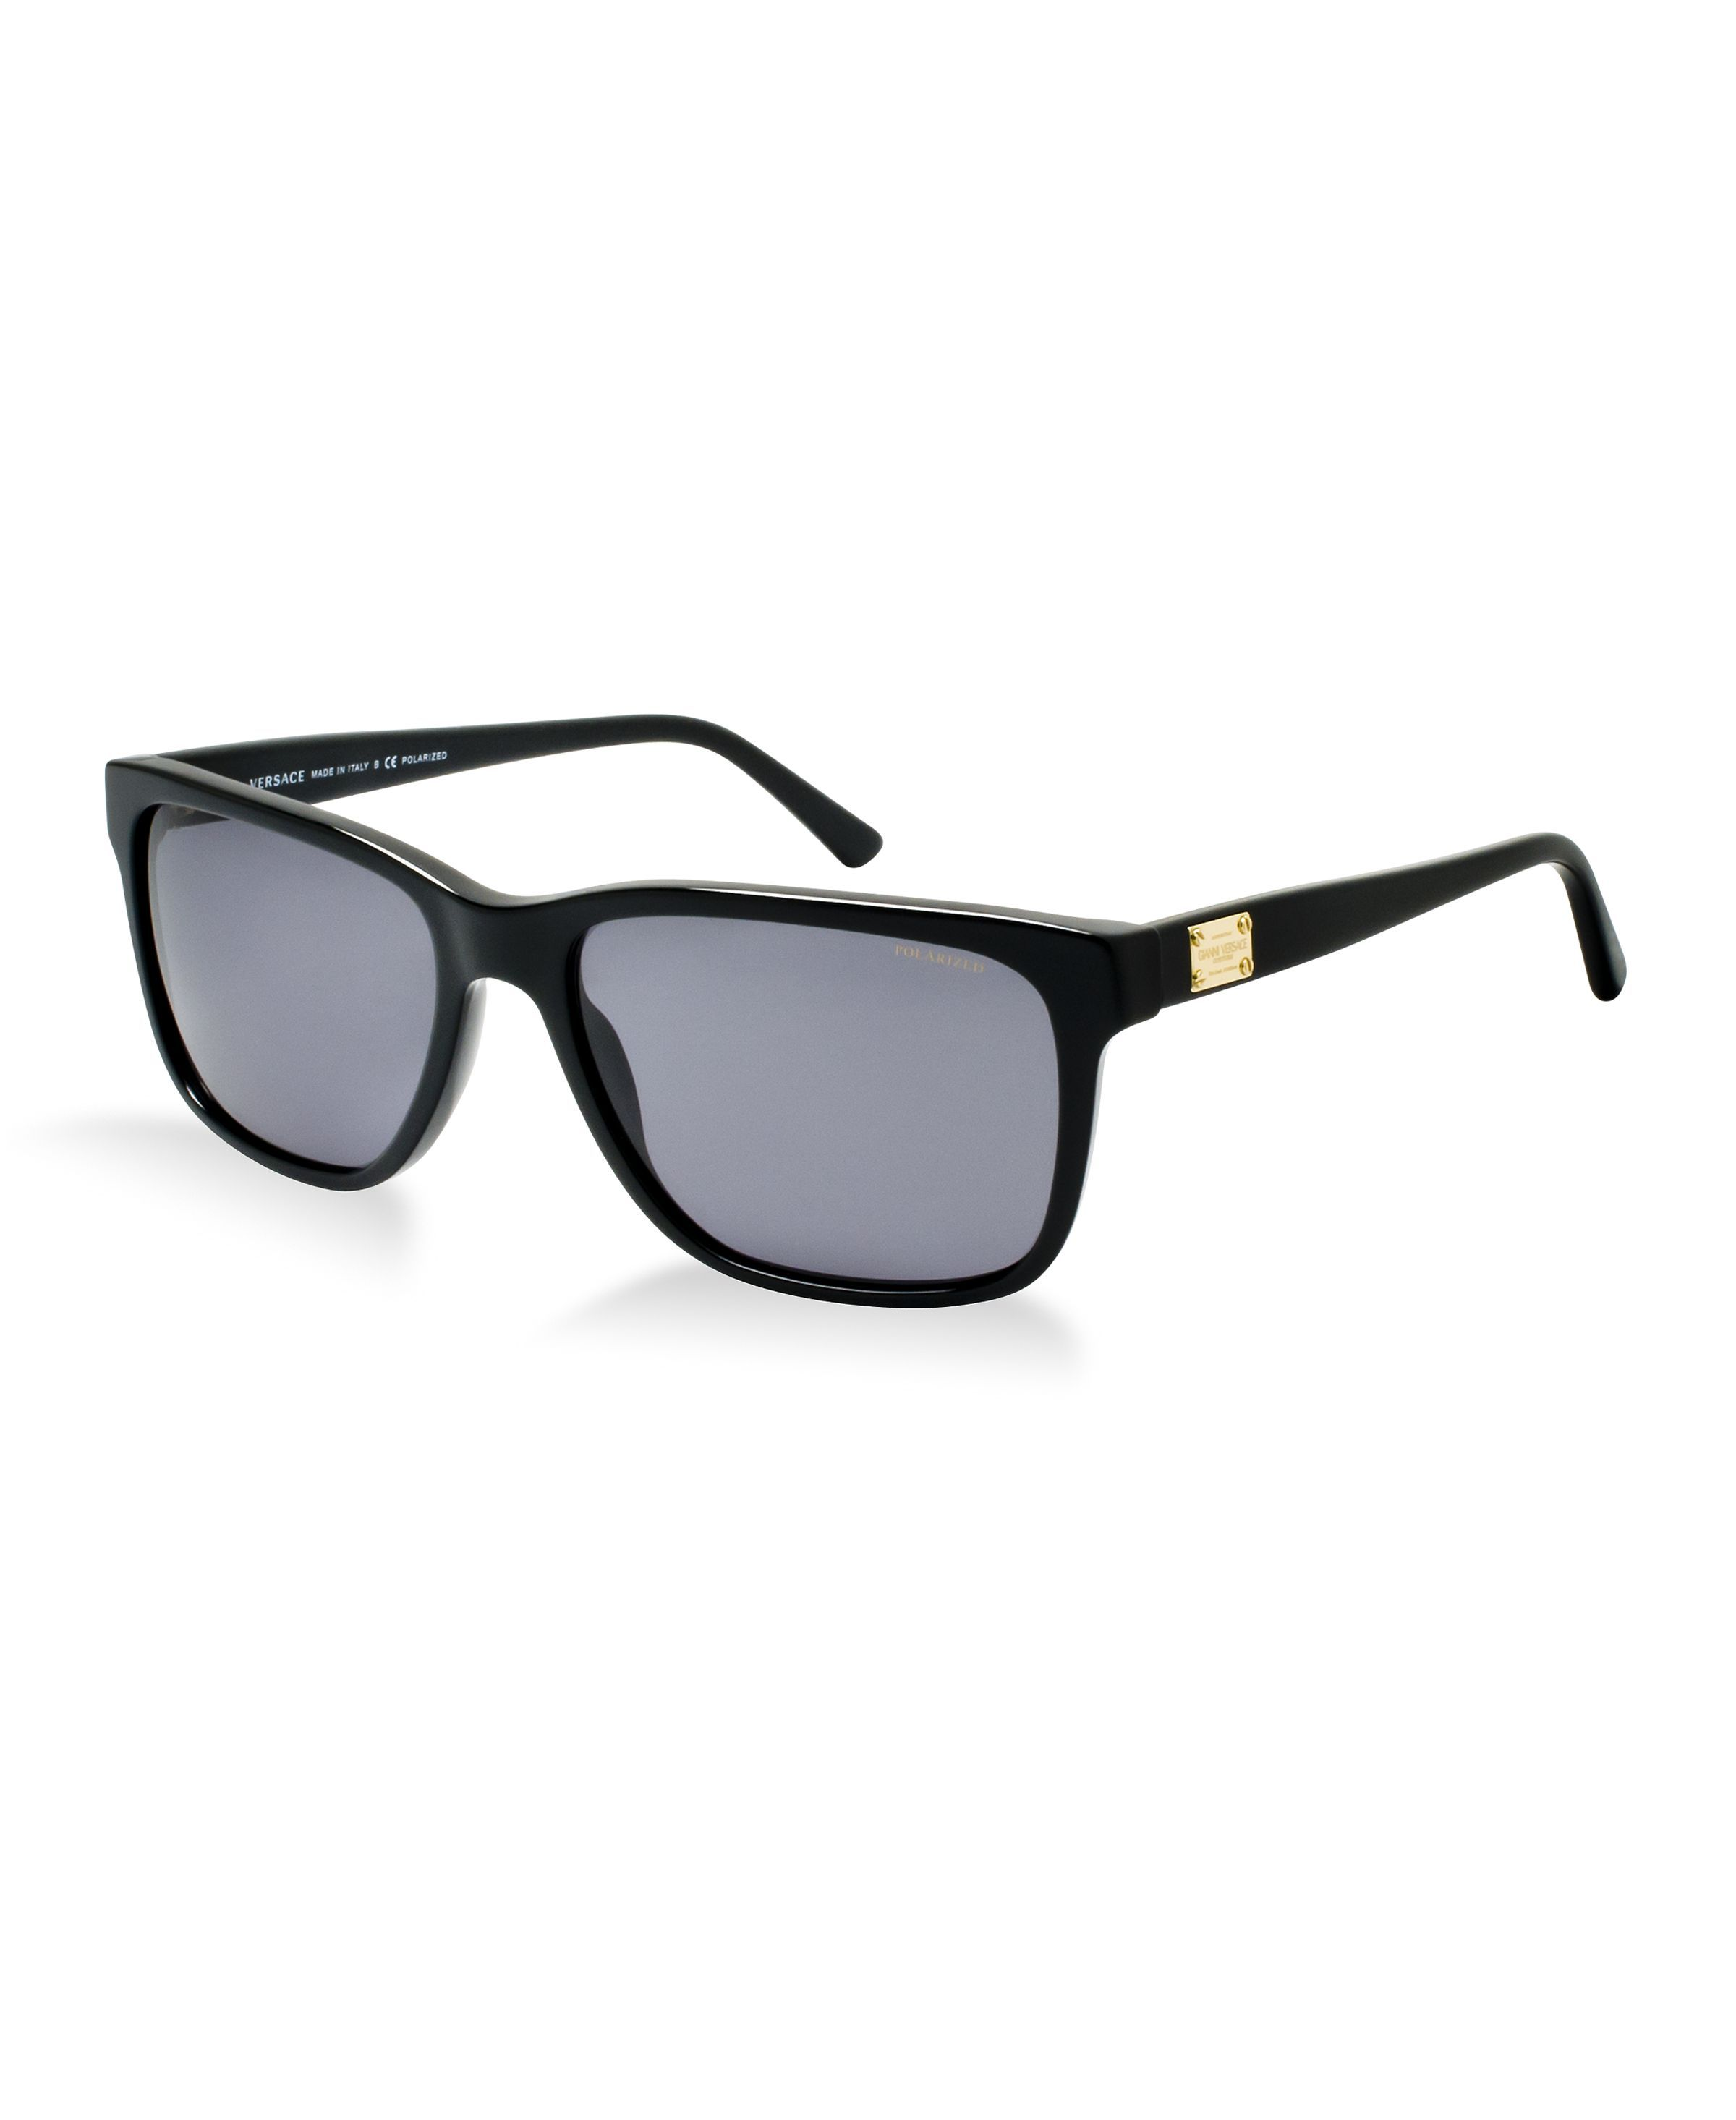 2883f5bdfa1 ... Sunglasses by Sunglass Hut - Macy s. This square design features the  timeless Couture theme